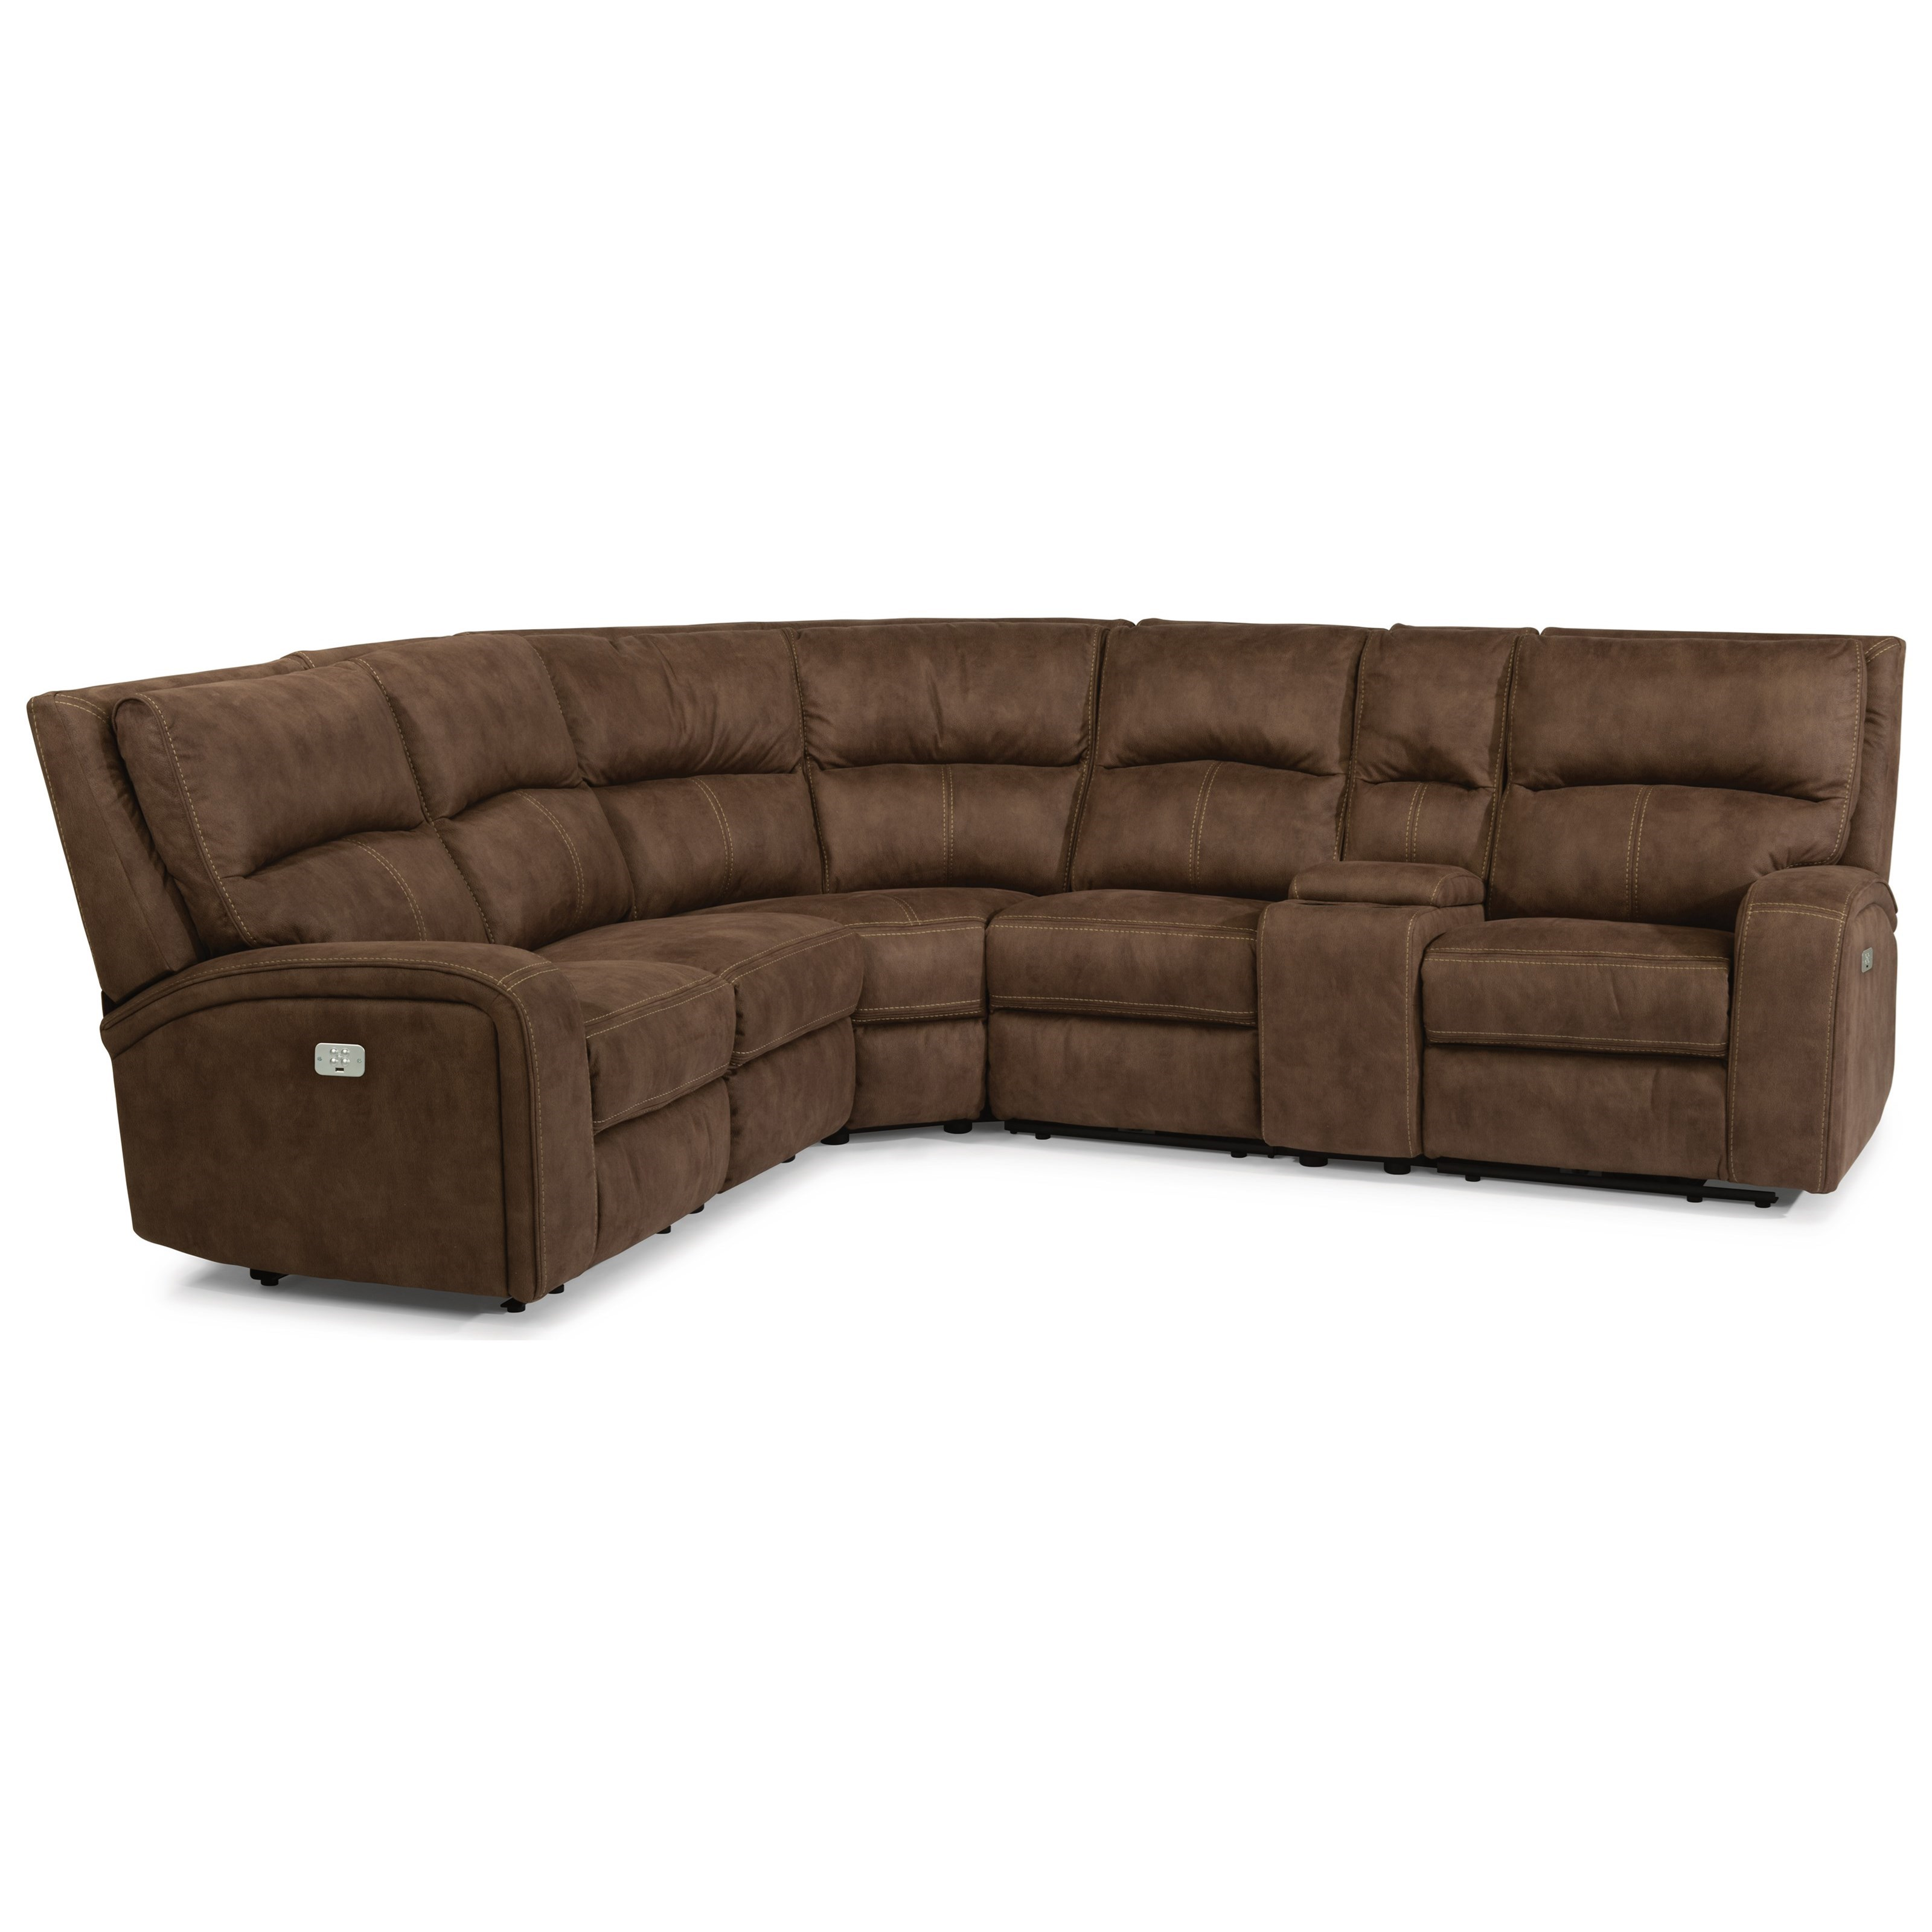 s four latitudes furniture chaise sectional piece mattress and flexsteel transitional sofa collections with royal laf item sofas powell port